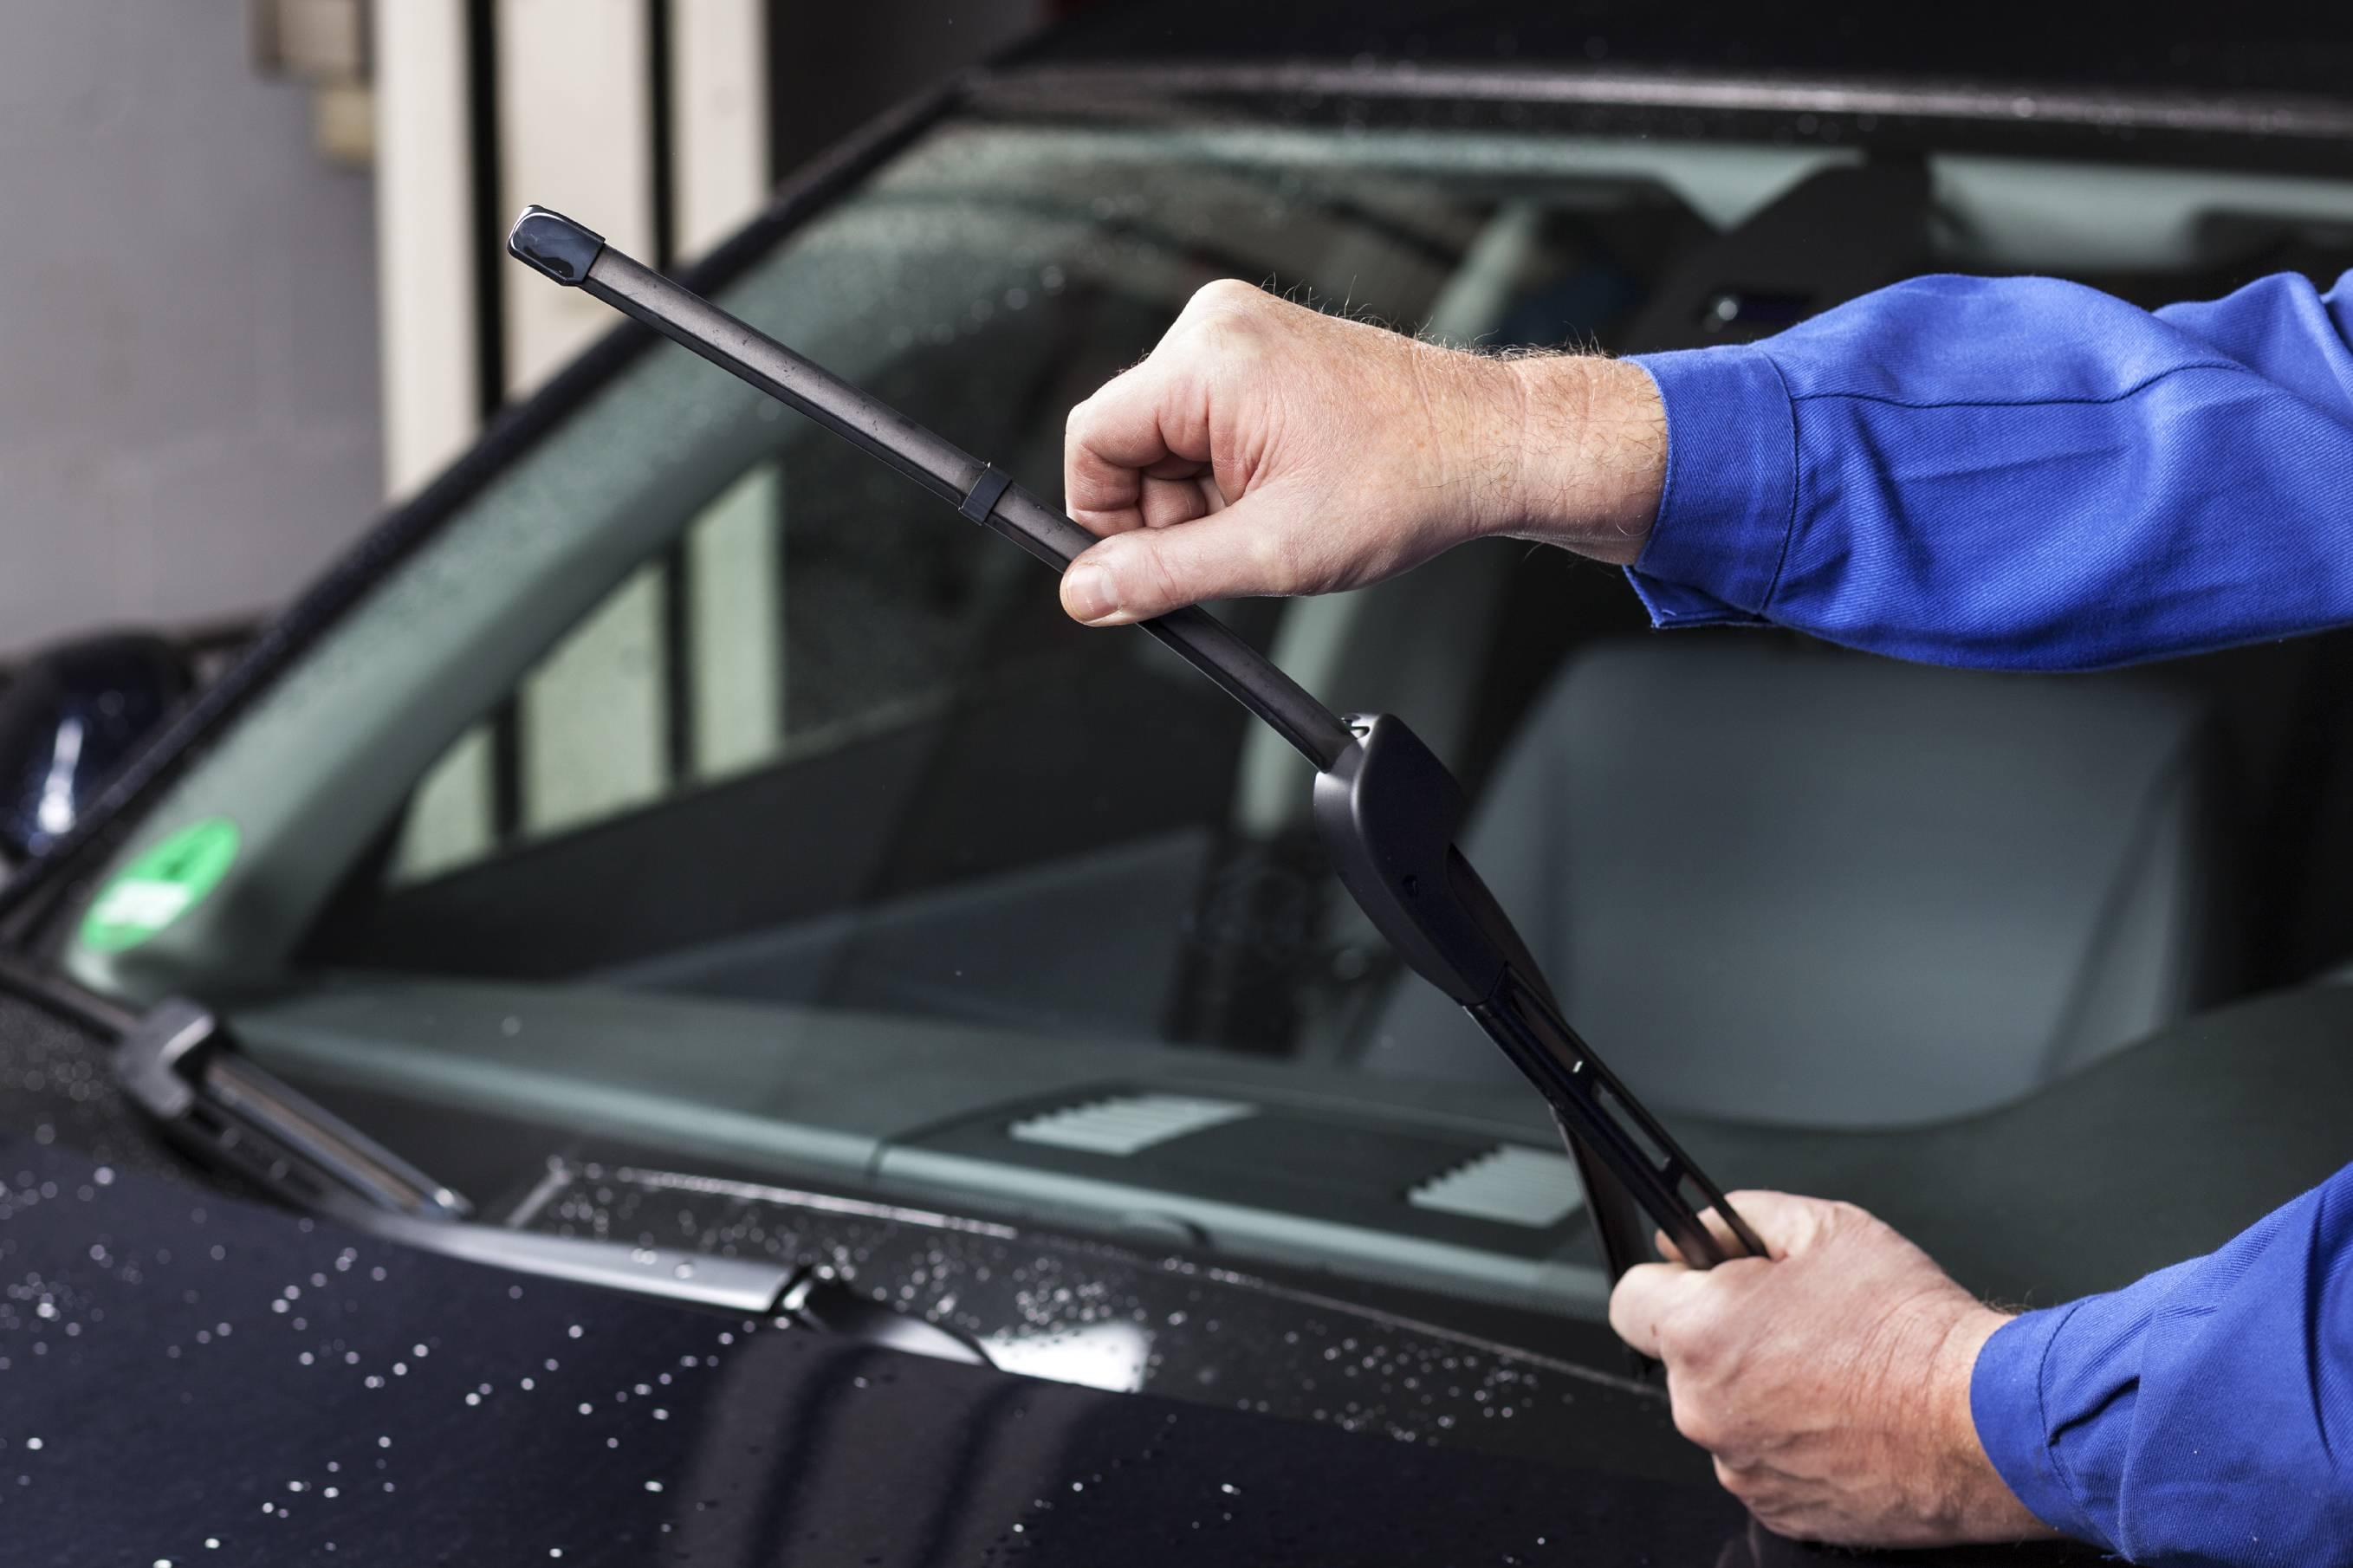 Preventative Car Maintenance - Wipers